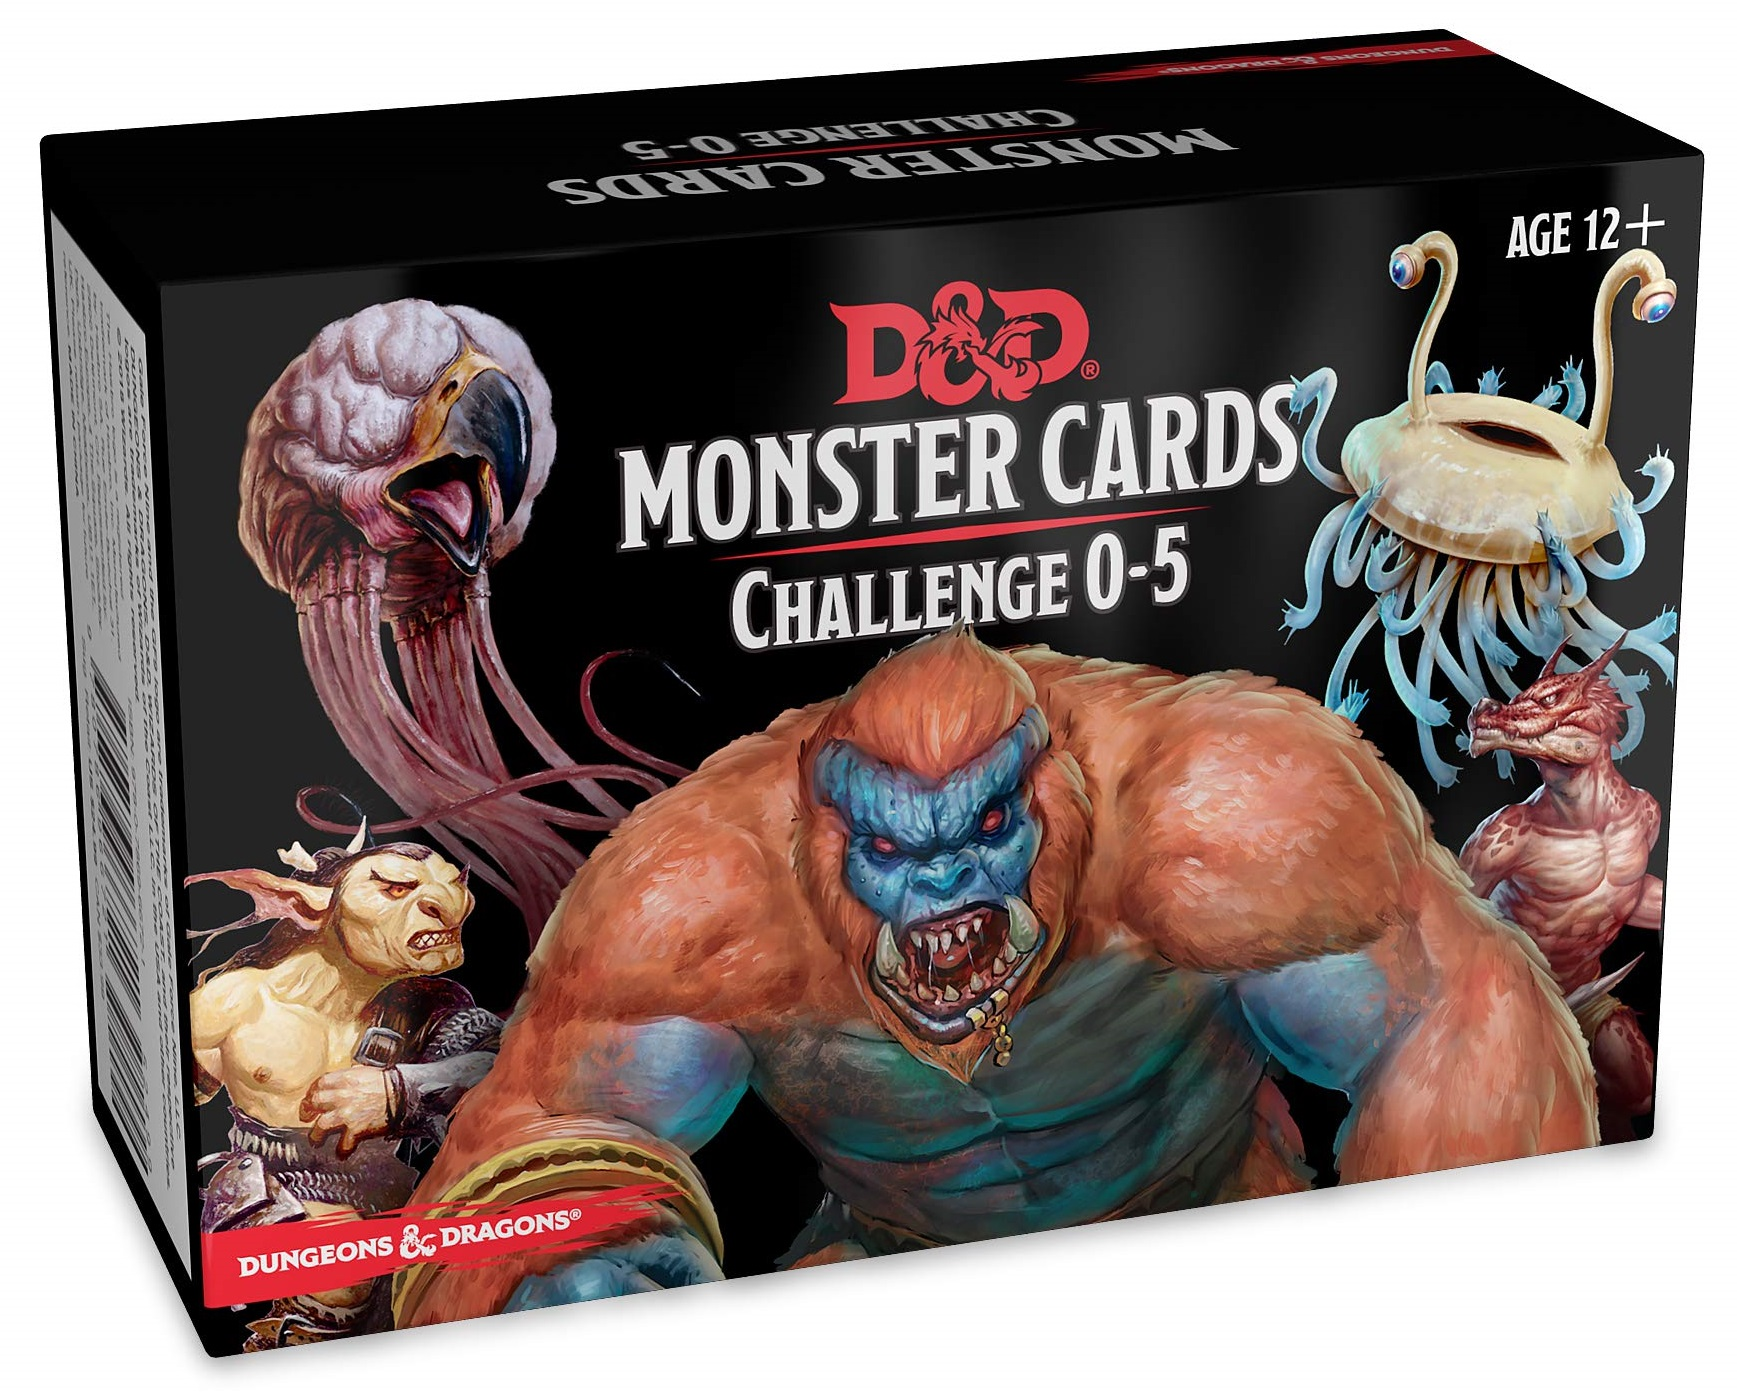 Dungeons And Dragons Rpg: Monster Cards - Challenge 0-5 Deck (268 Cards) Game Box